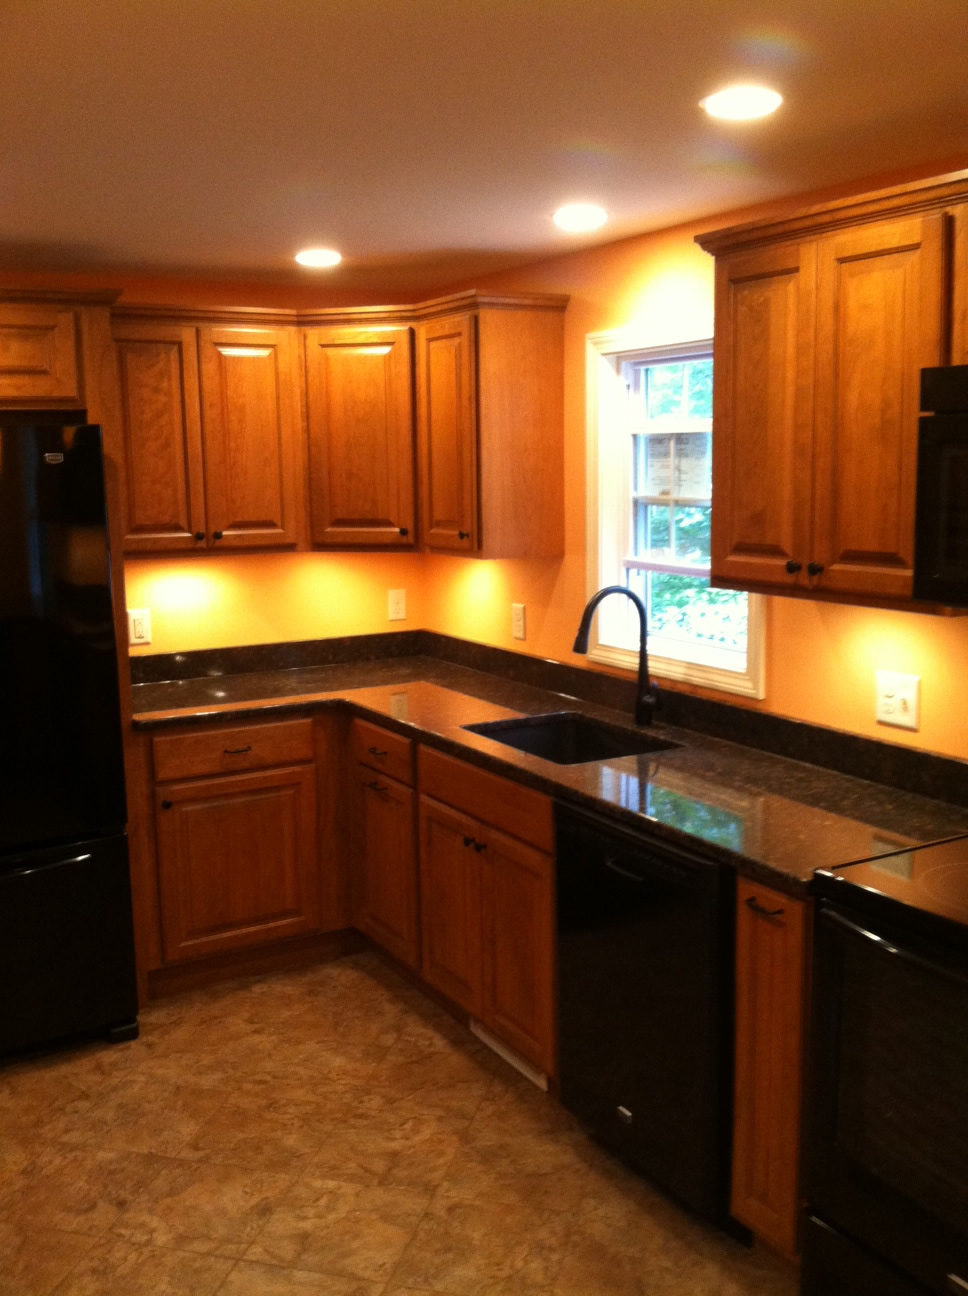 Kitchen Remodel in North Andover, MA by TPM Construction